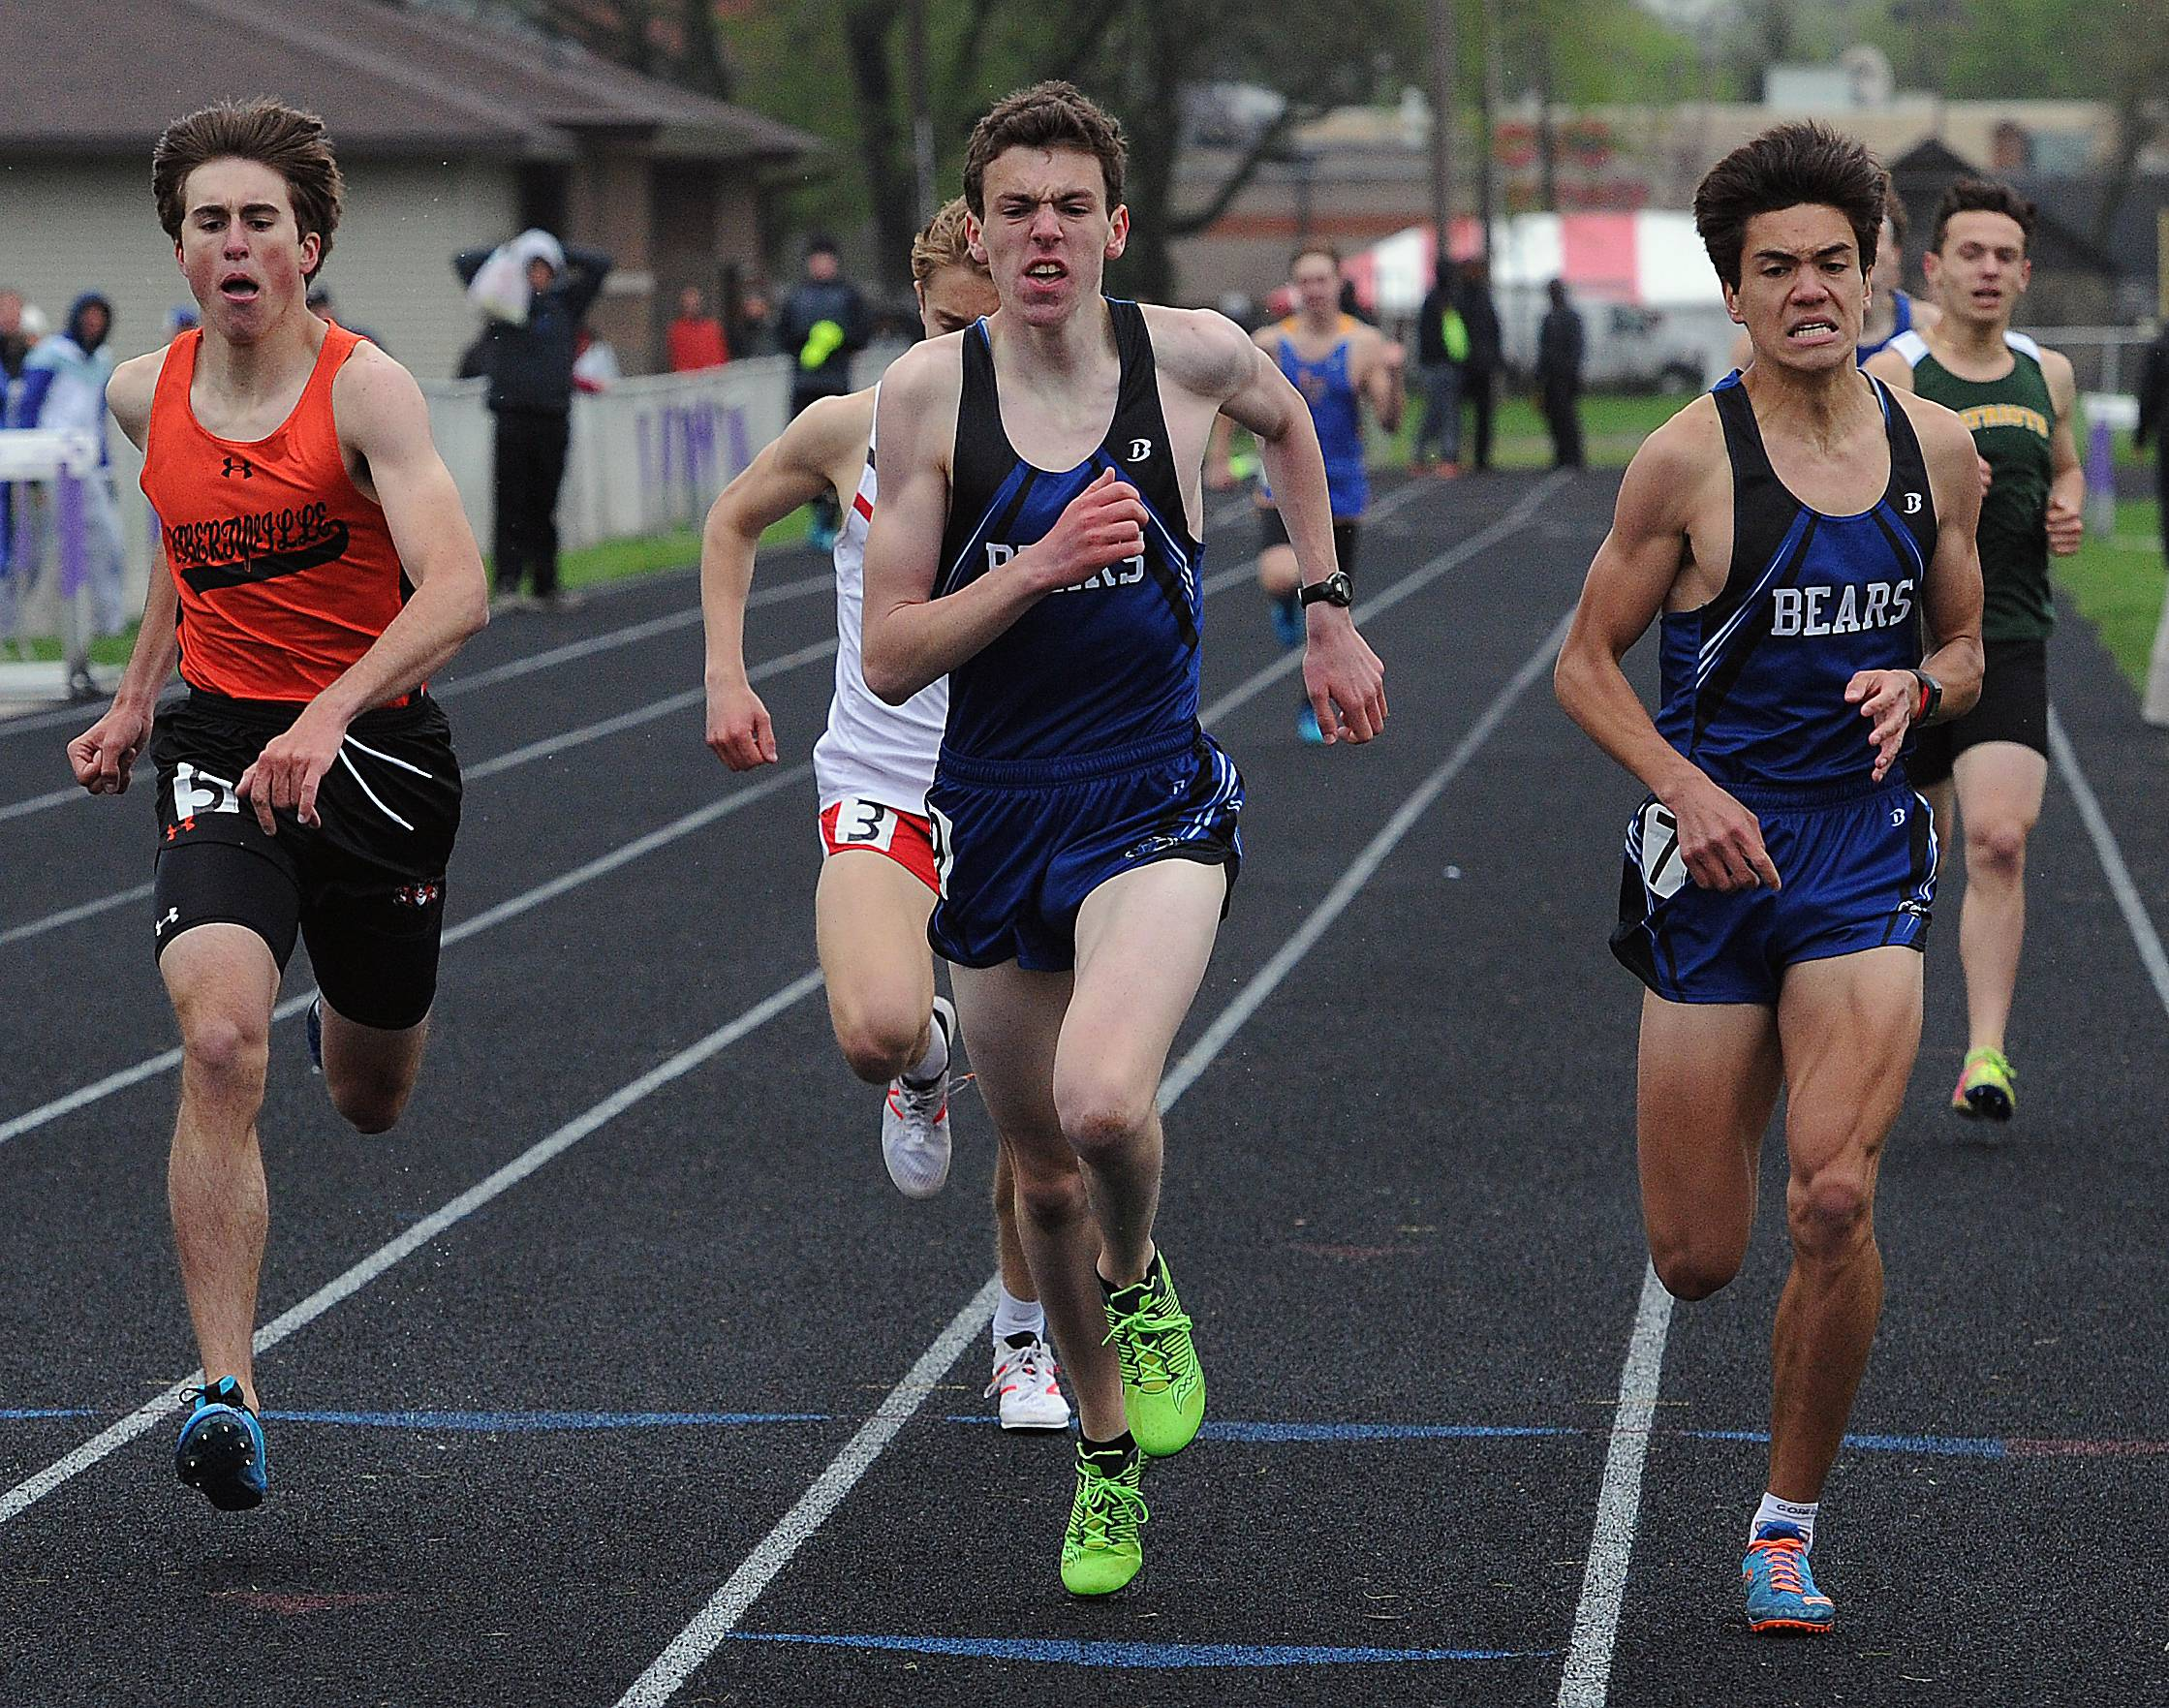 Sean Ginn (middle) of Lake Zurich leads the pack for a win in the 800-meter run at the NSC meet in Waukegan. Ginn is flanked by teammate Drake Heisterkamp, right, and Libertyville's Austin Becker.